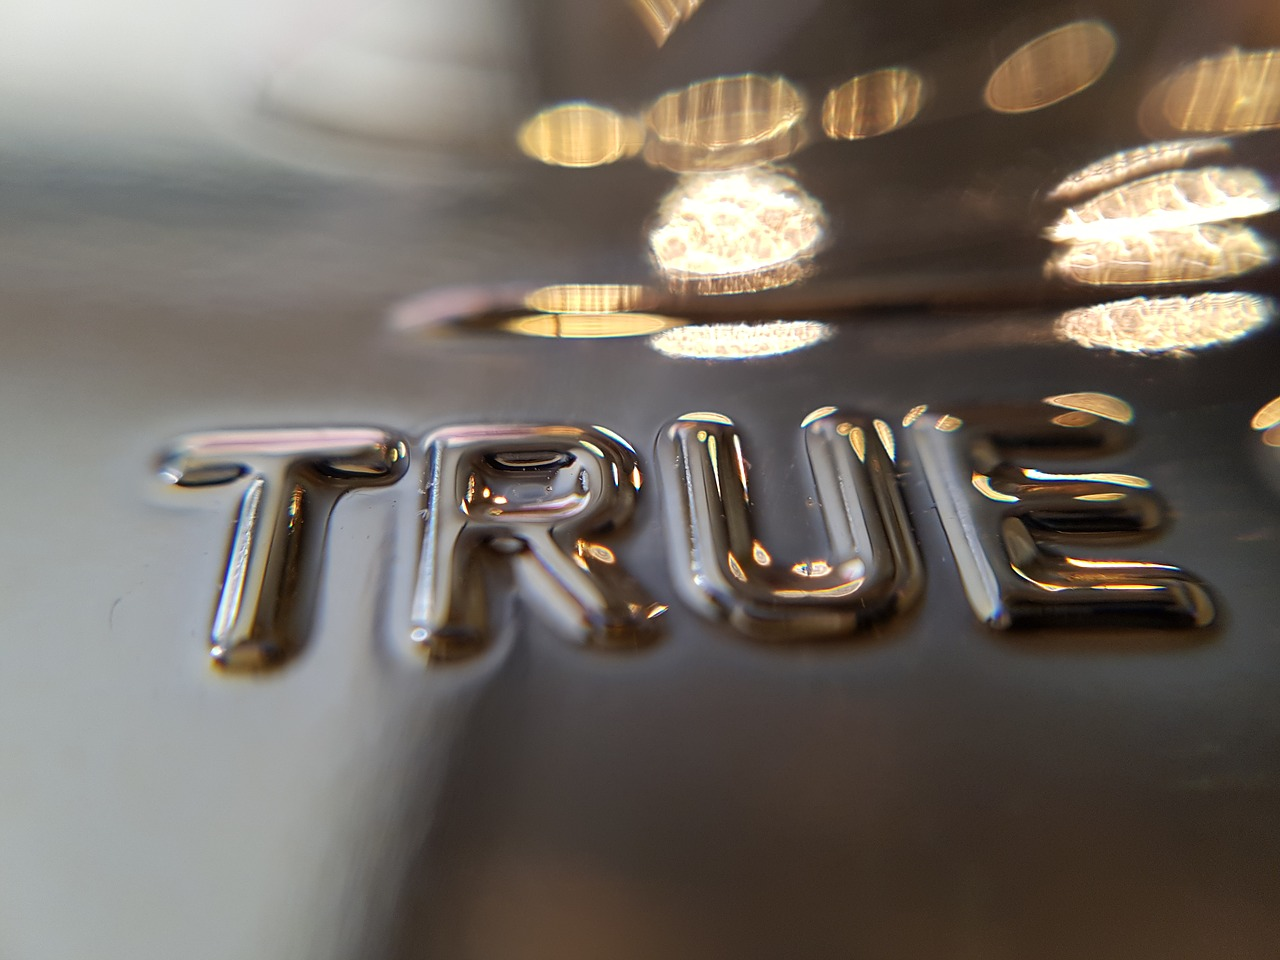 13.1 The 3 Truths Every Entrepreneur Should Understand About Marketing